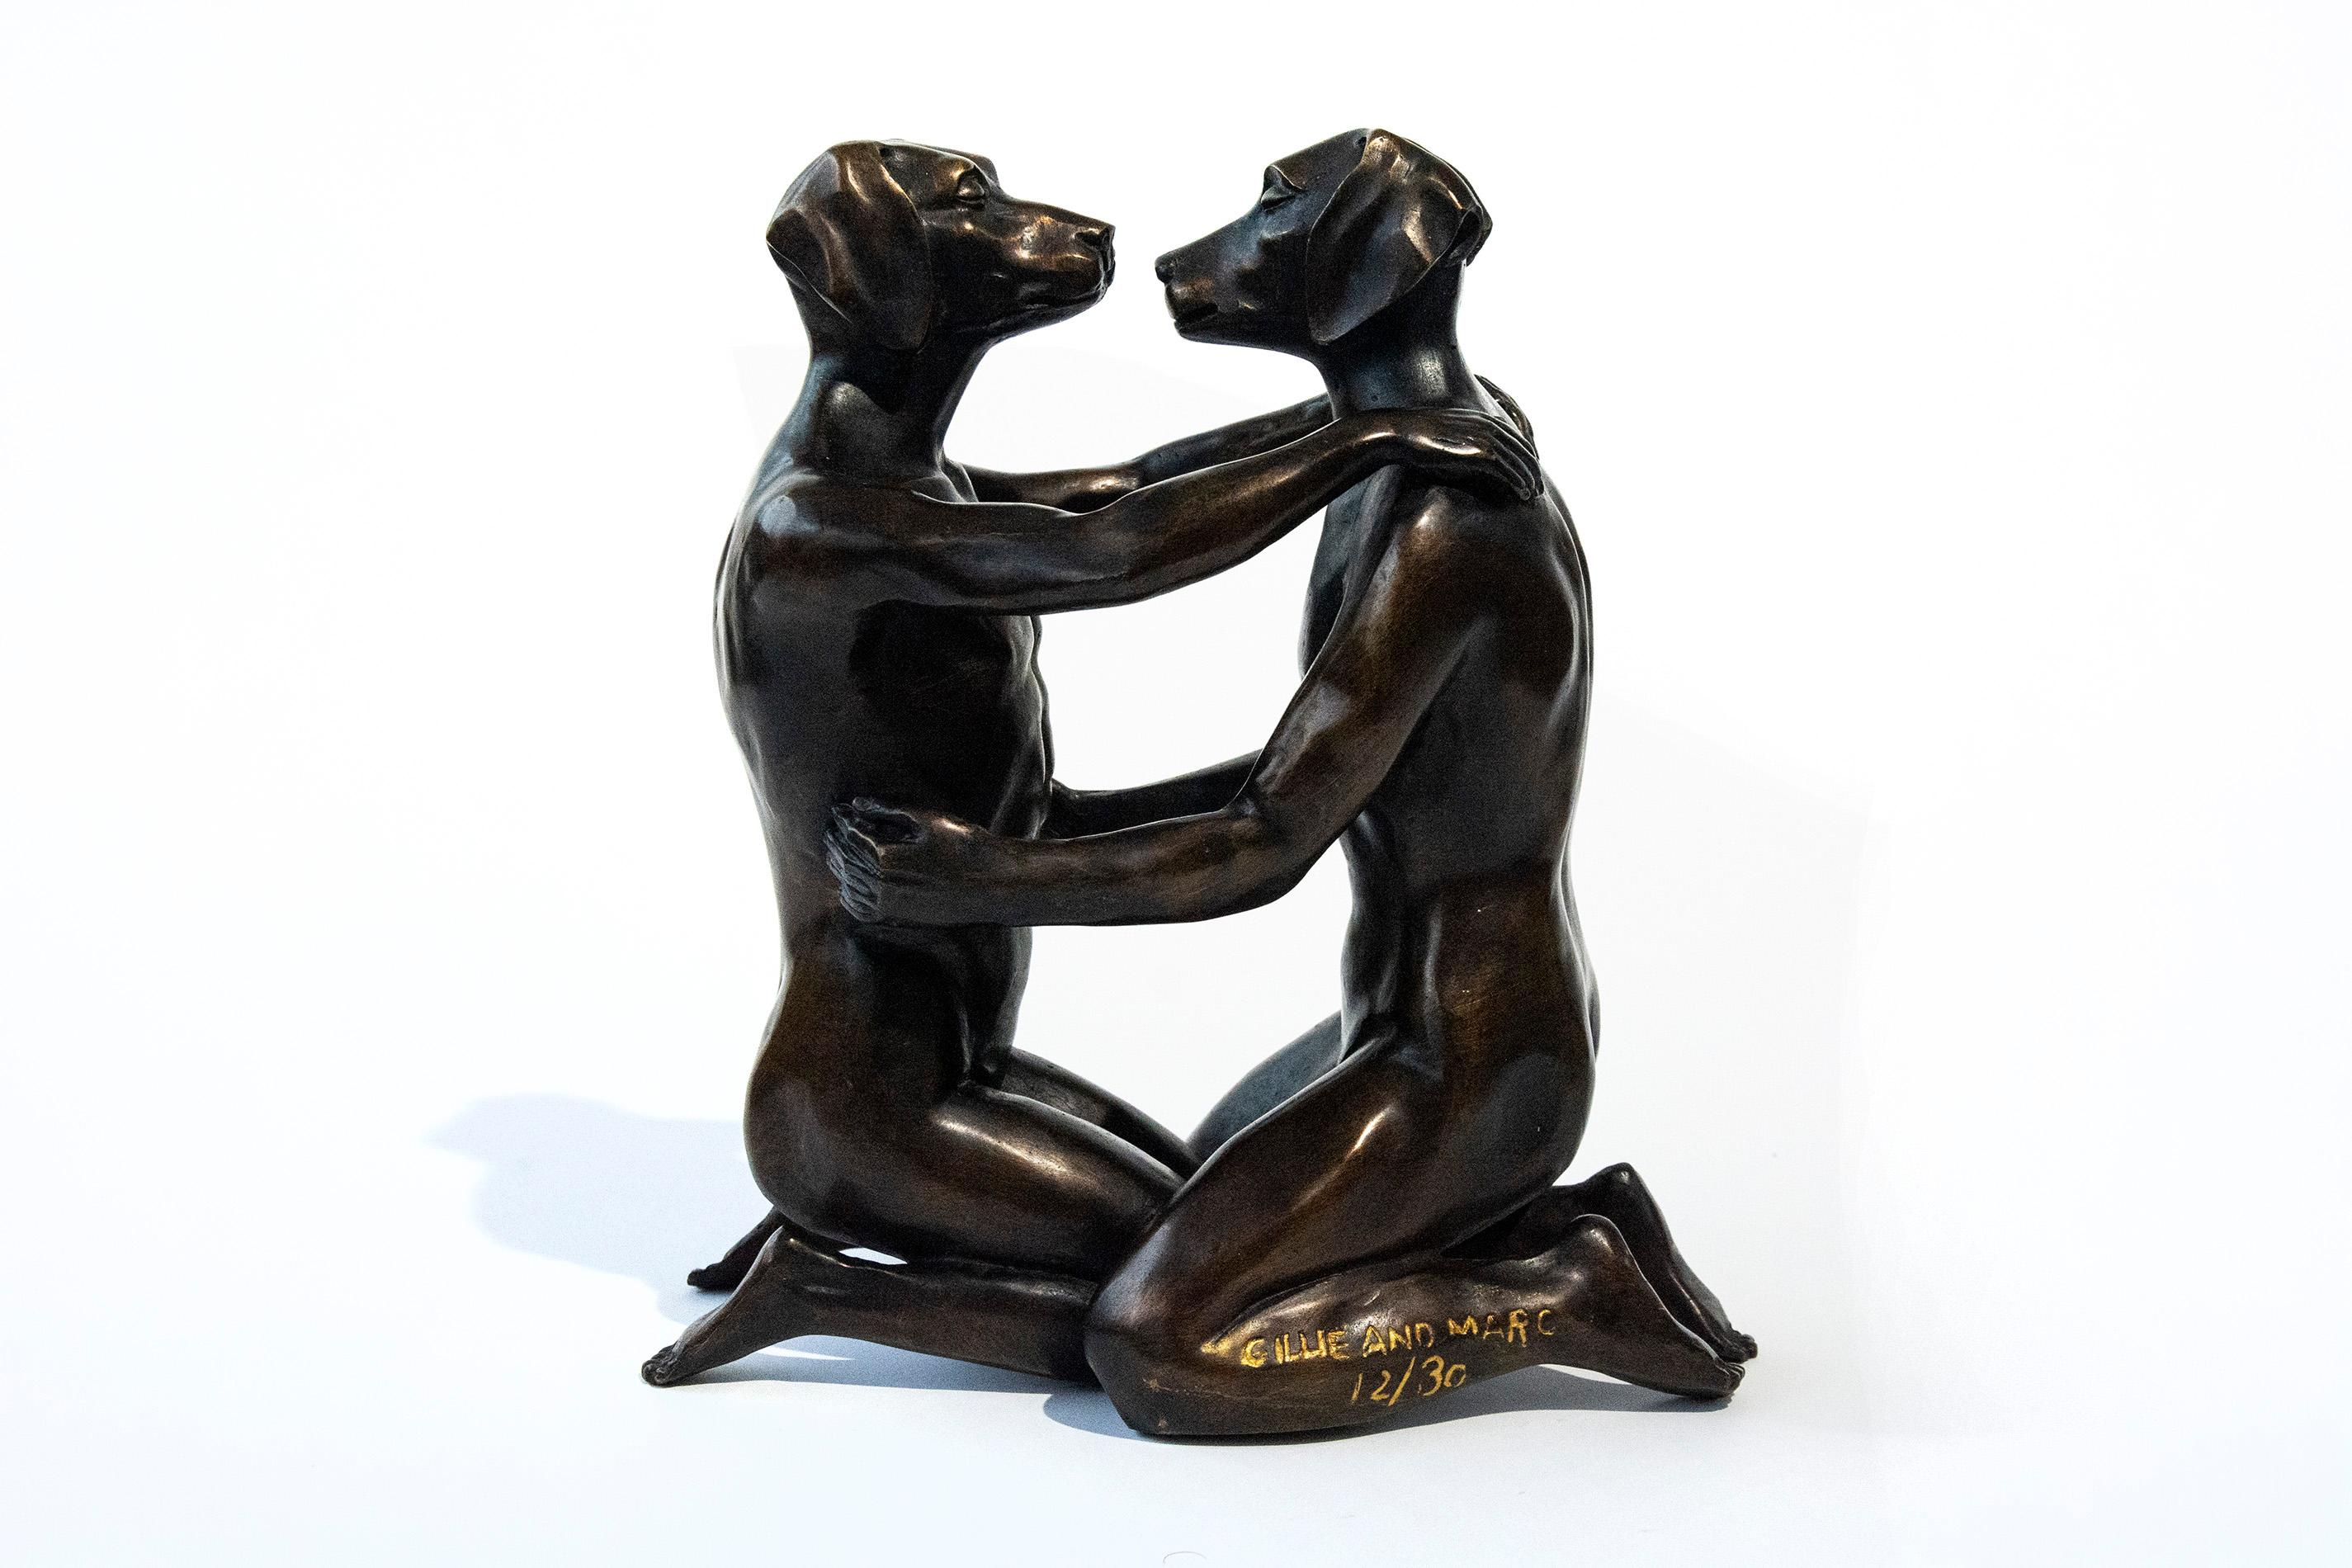 He loved being in love 12/30 - playful, figurative bronze sculpture